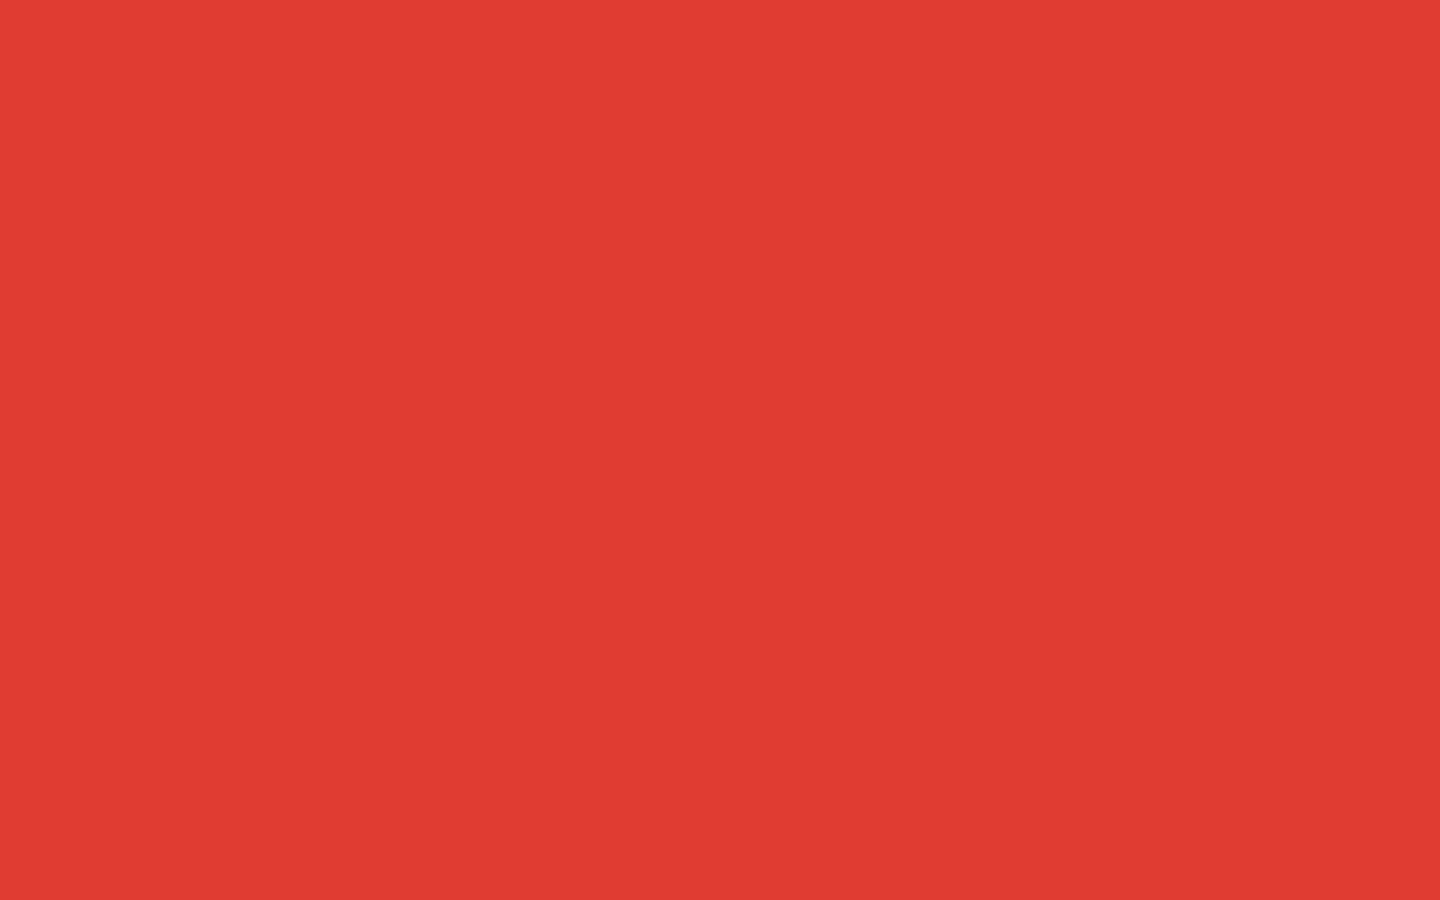 1440x900 CG Red Solid Color Background